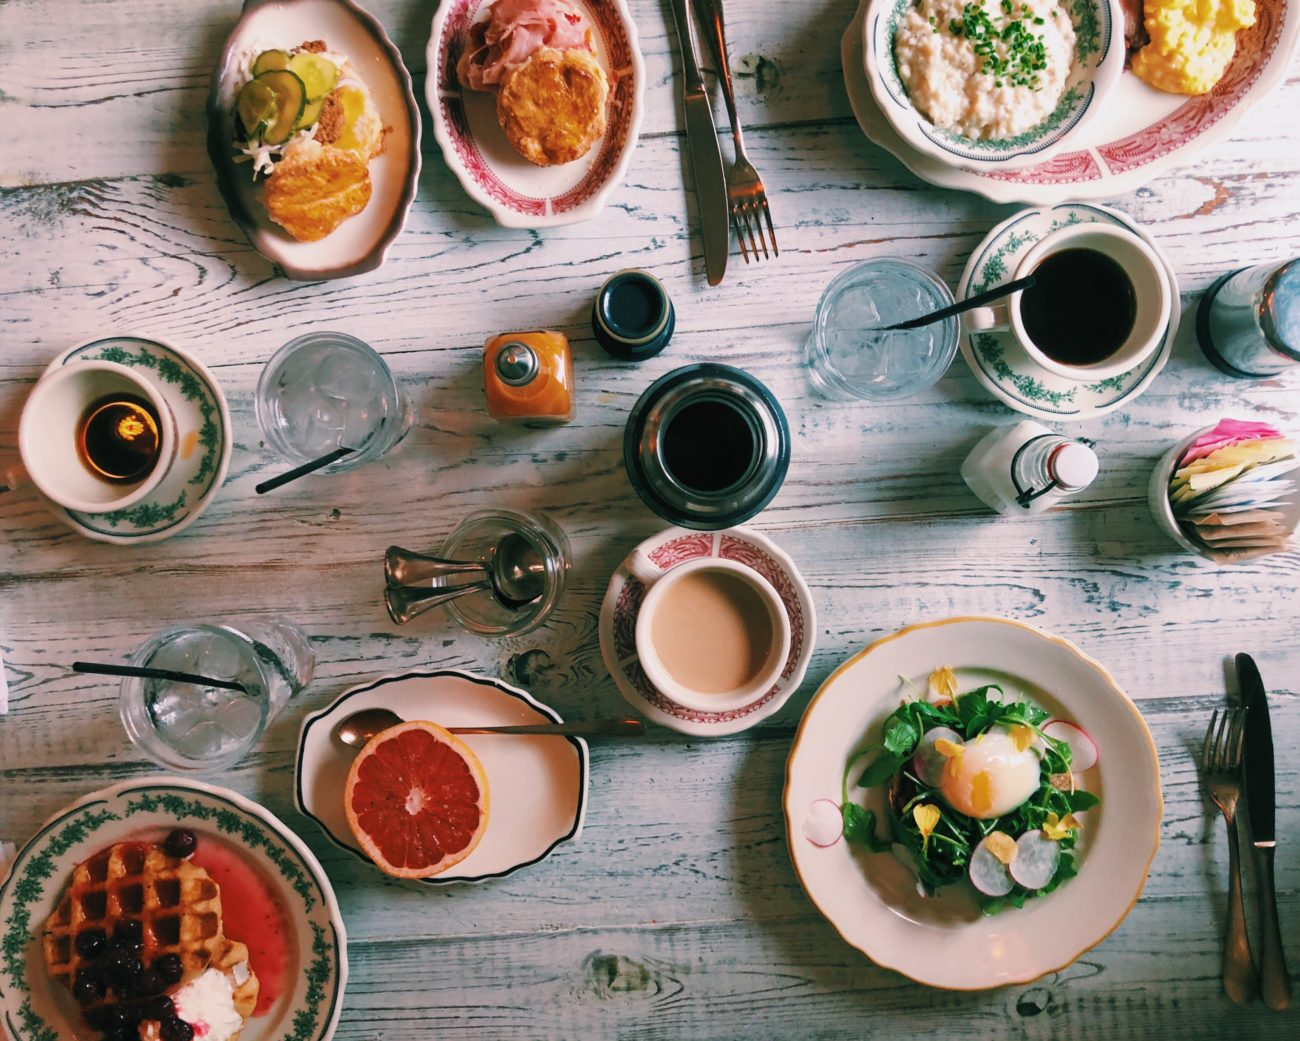 Haberdish is now serving weekday brunch Tuesday – Friday